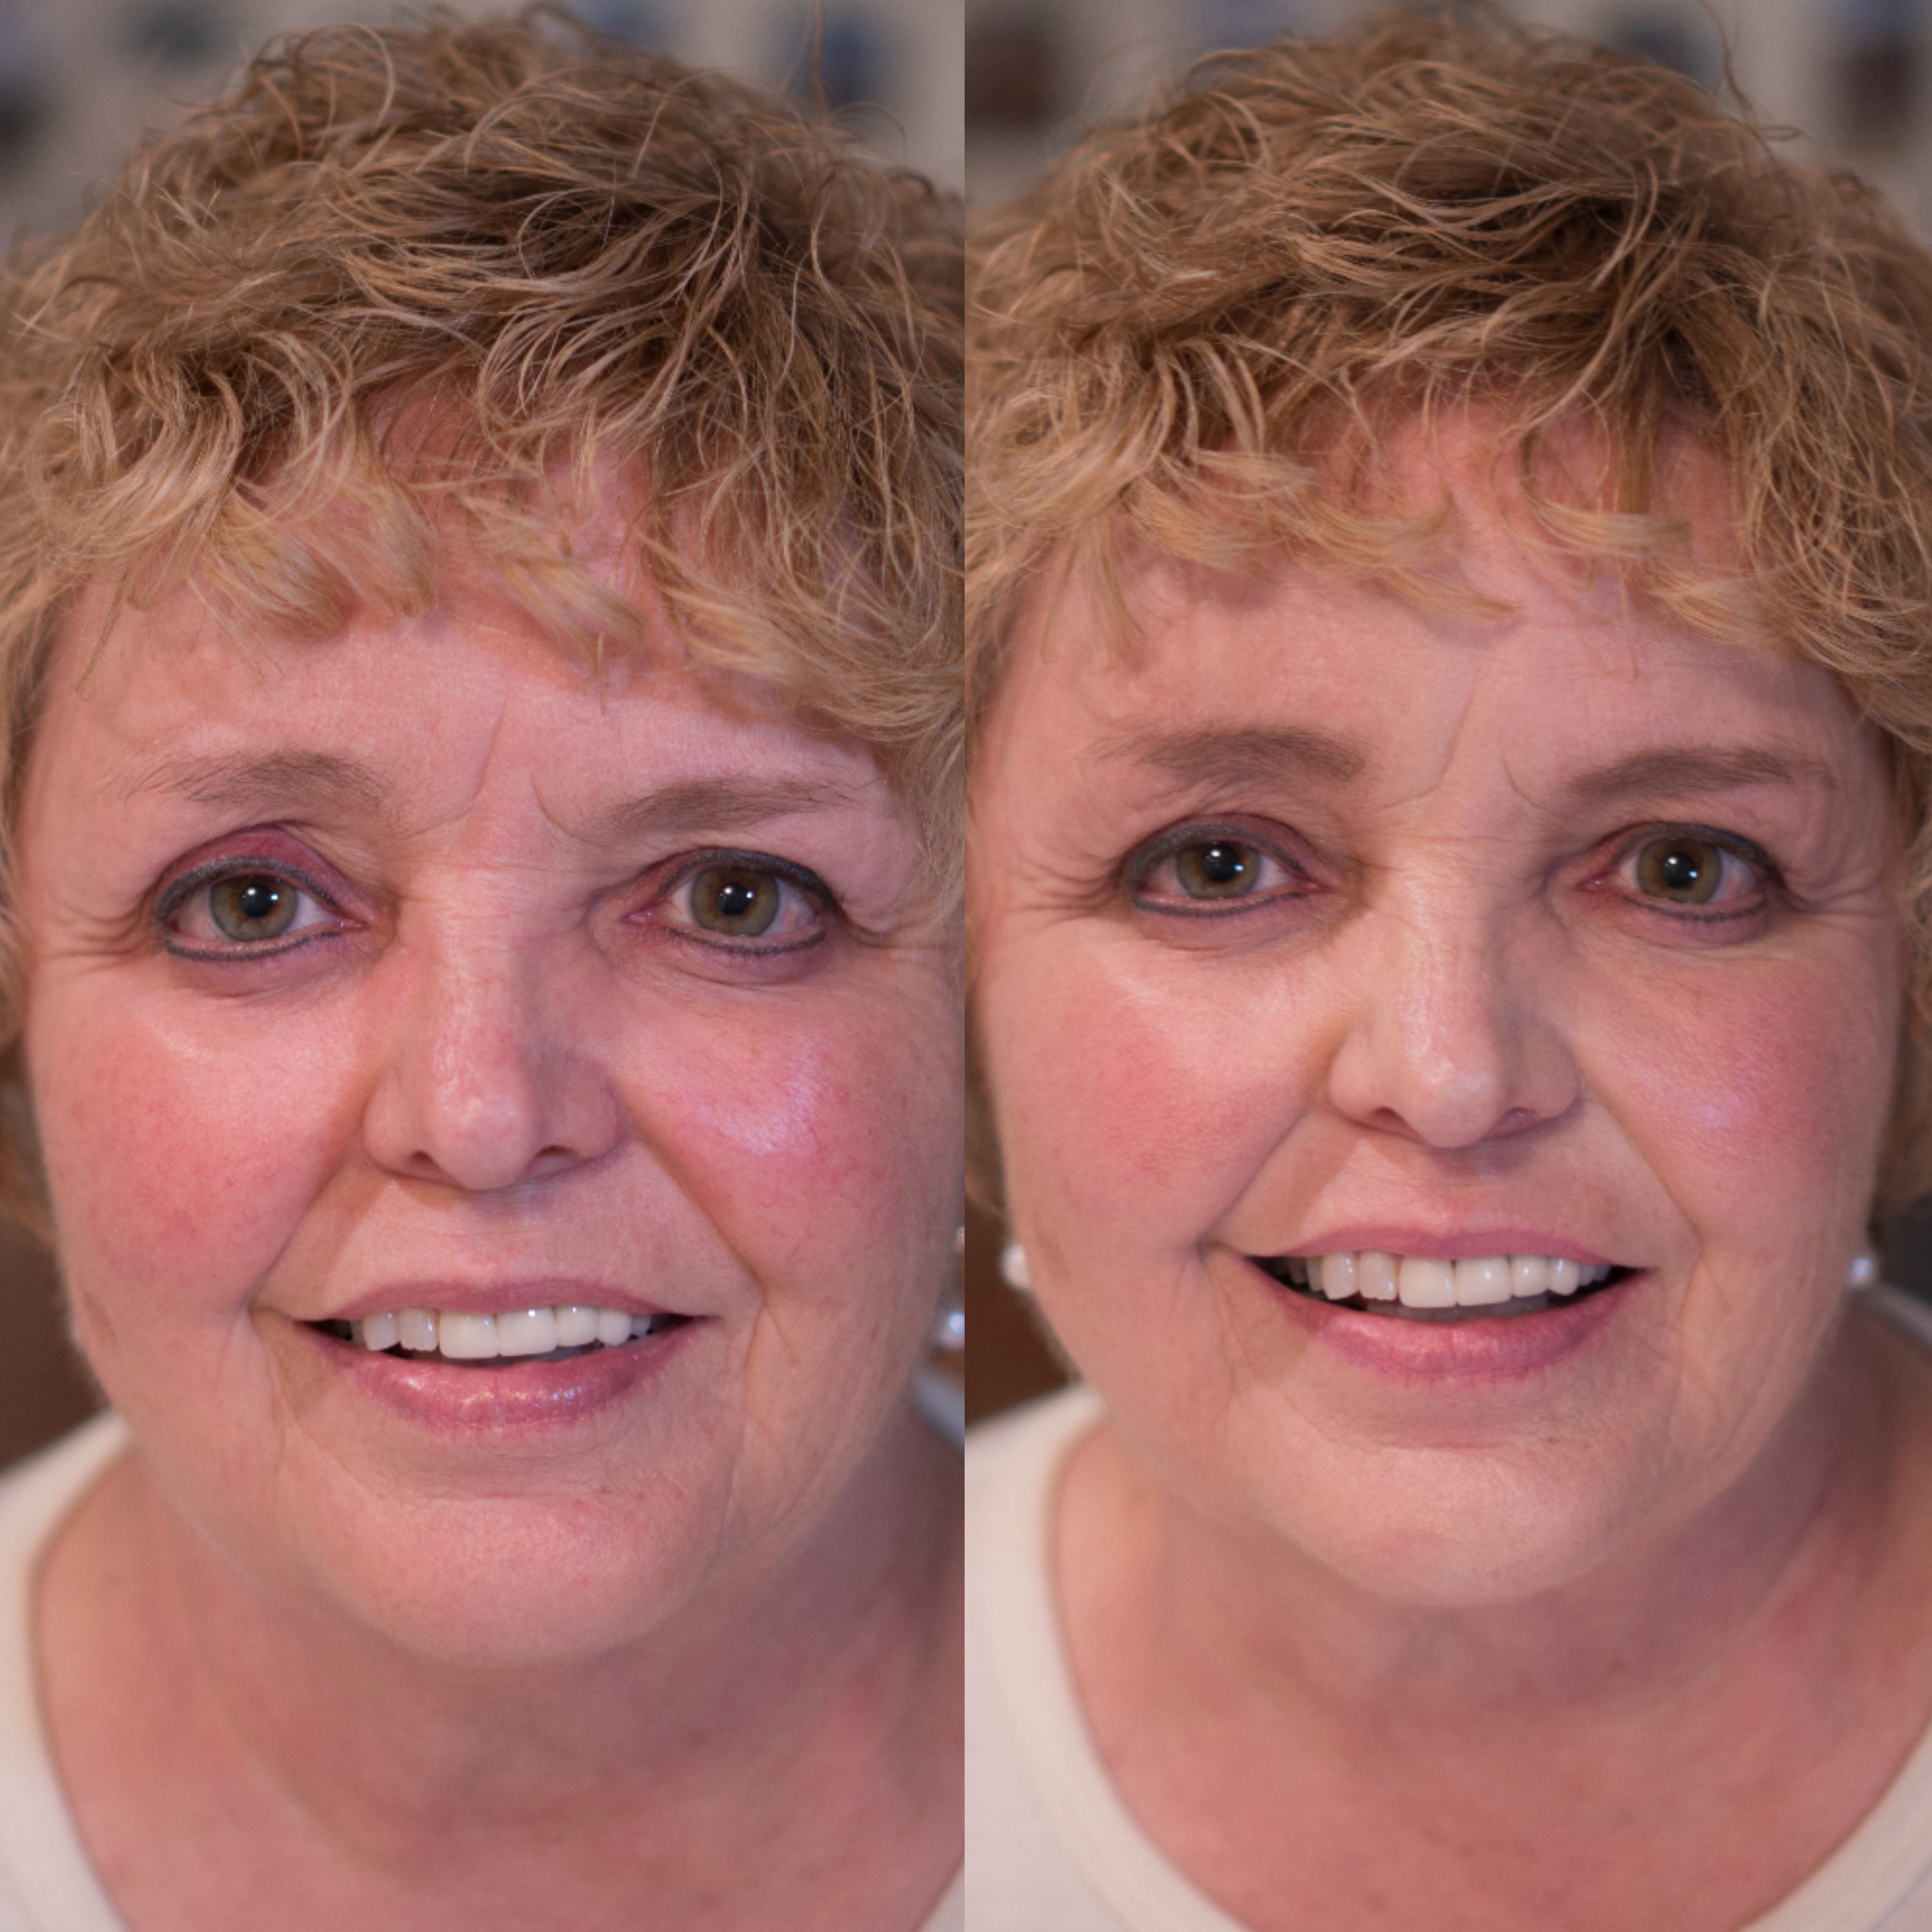 Lovely Before & After using Maskcara Makeup at www.maskcarabeautygirl.com